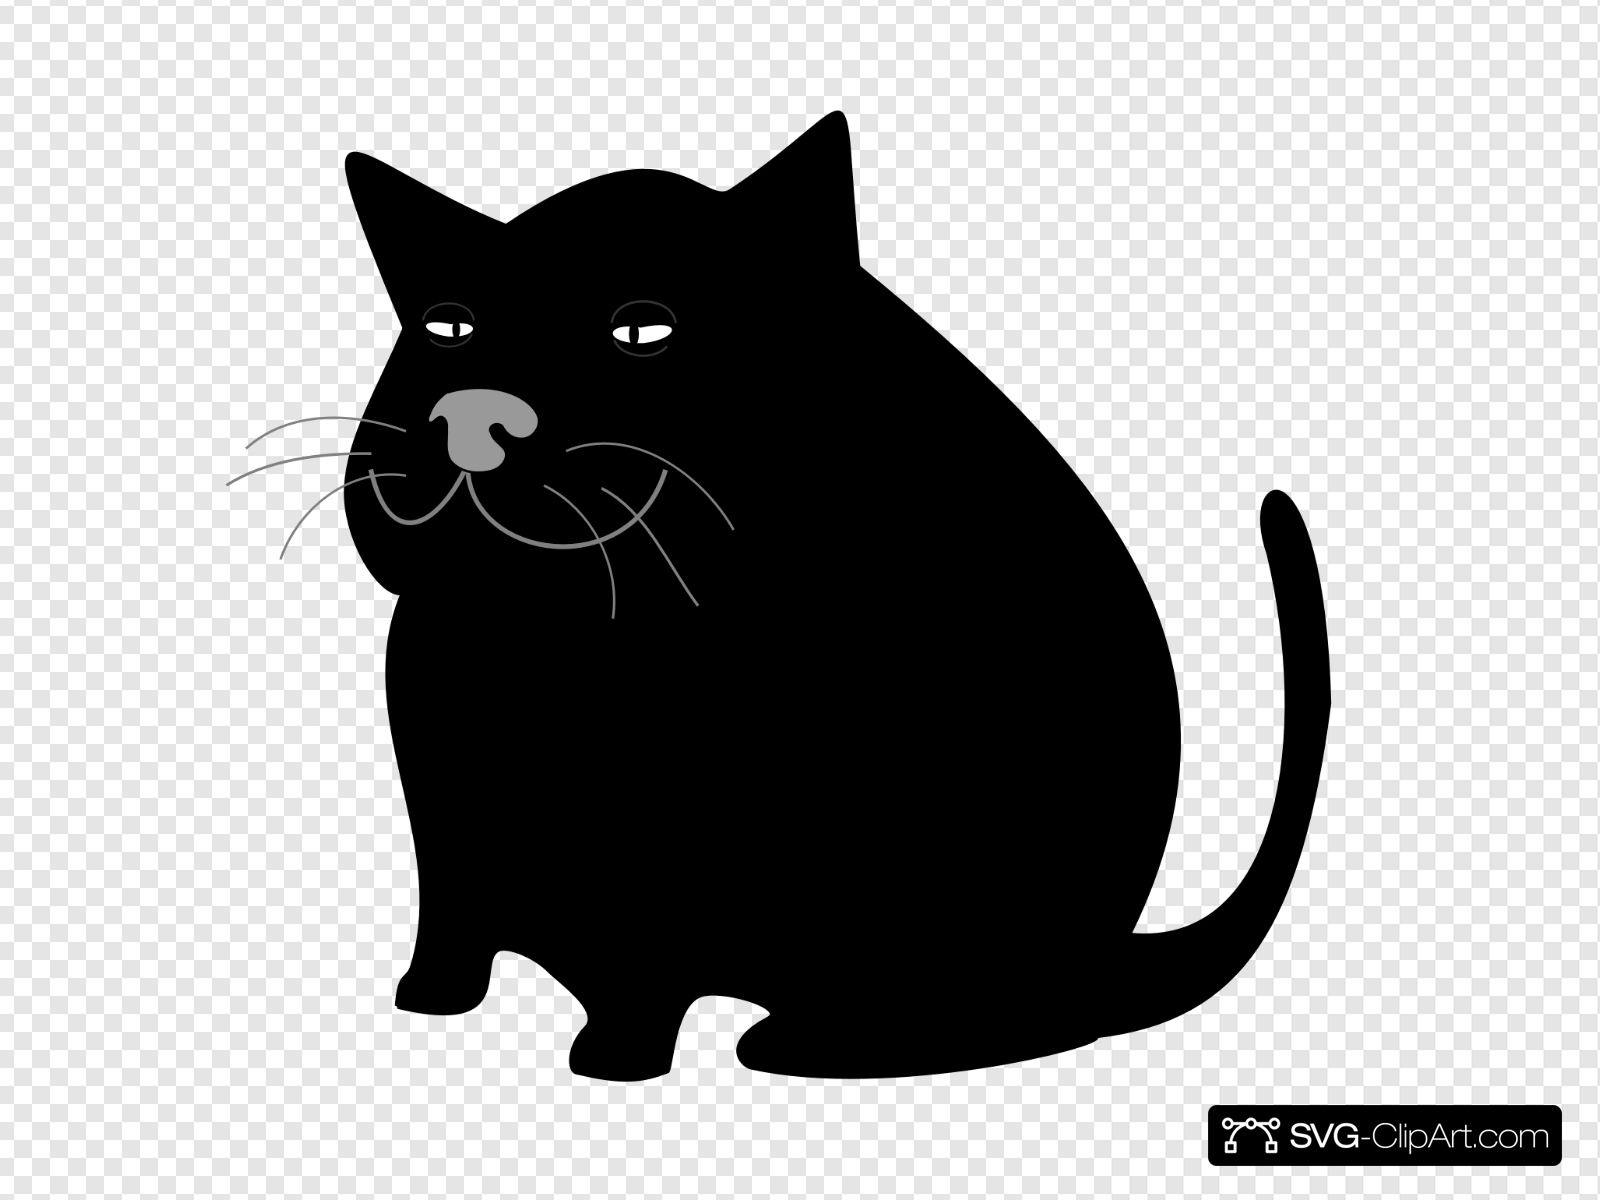 Negro clipart svg library download Black Cat / Gato Negro Clip art, Icon and SVG - SVG Clipart svg library download